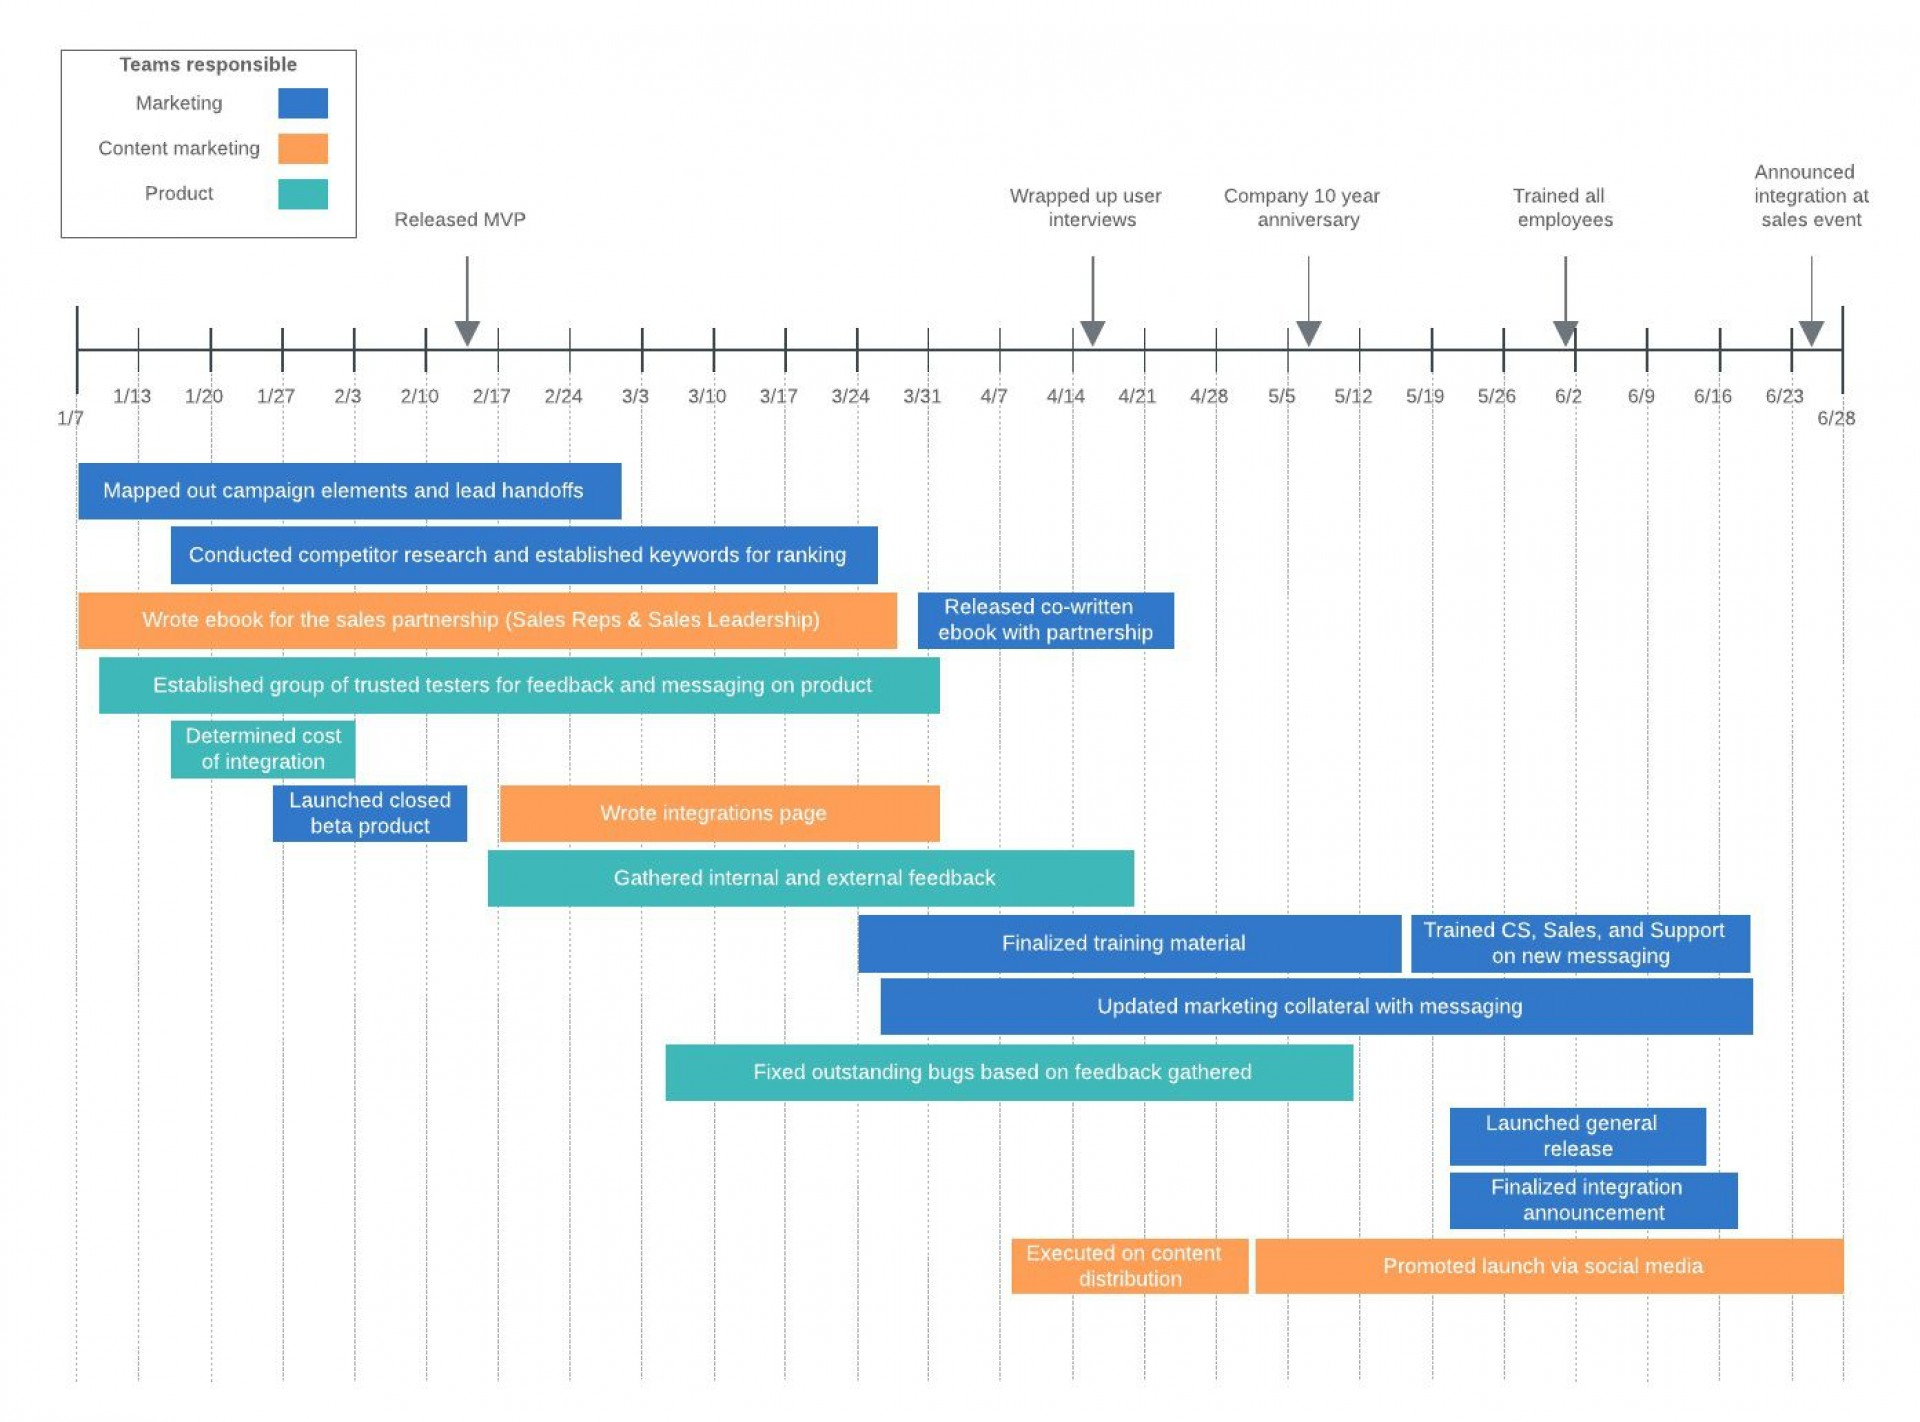 007 Stunning Google Doc Timeline Template Example  Historical1920